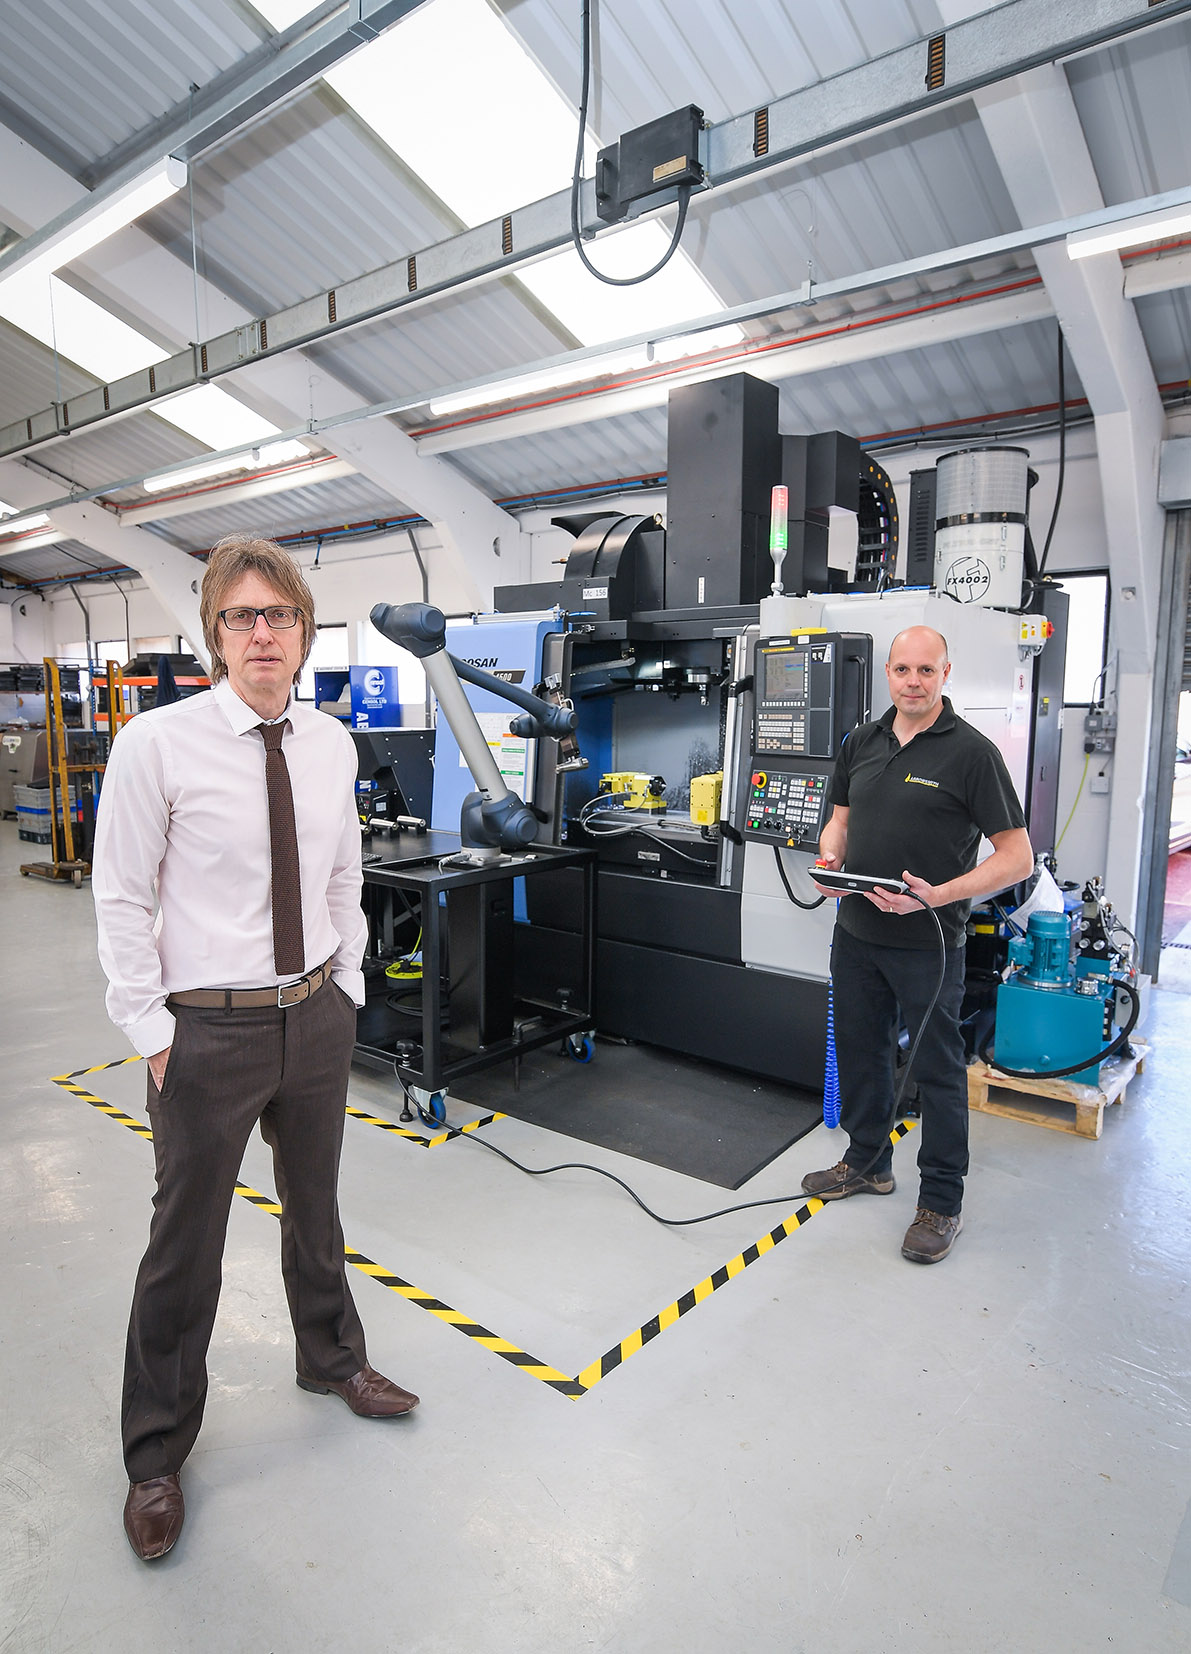 £200,000 robotic investment helps Coventry aerospace specialist deliver sales and jobs